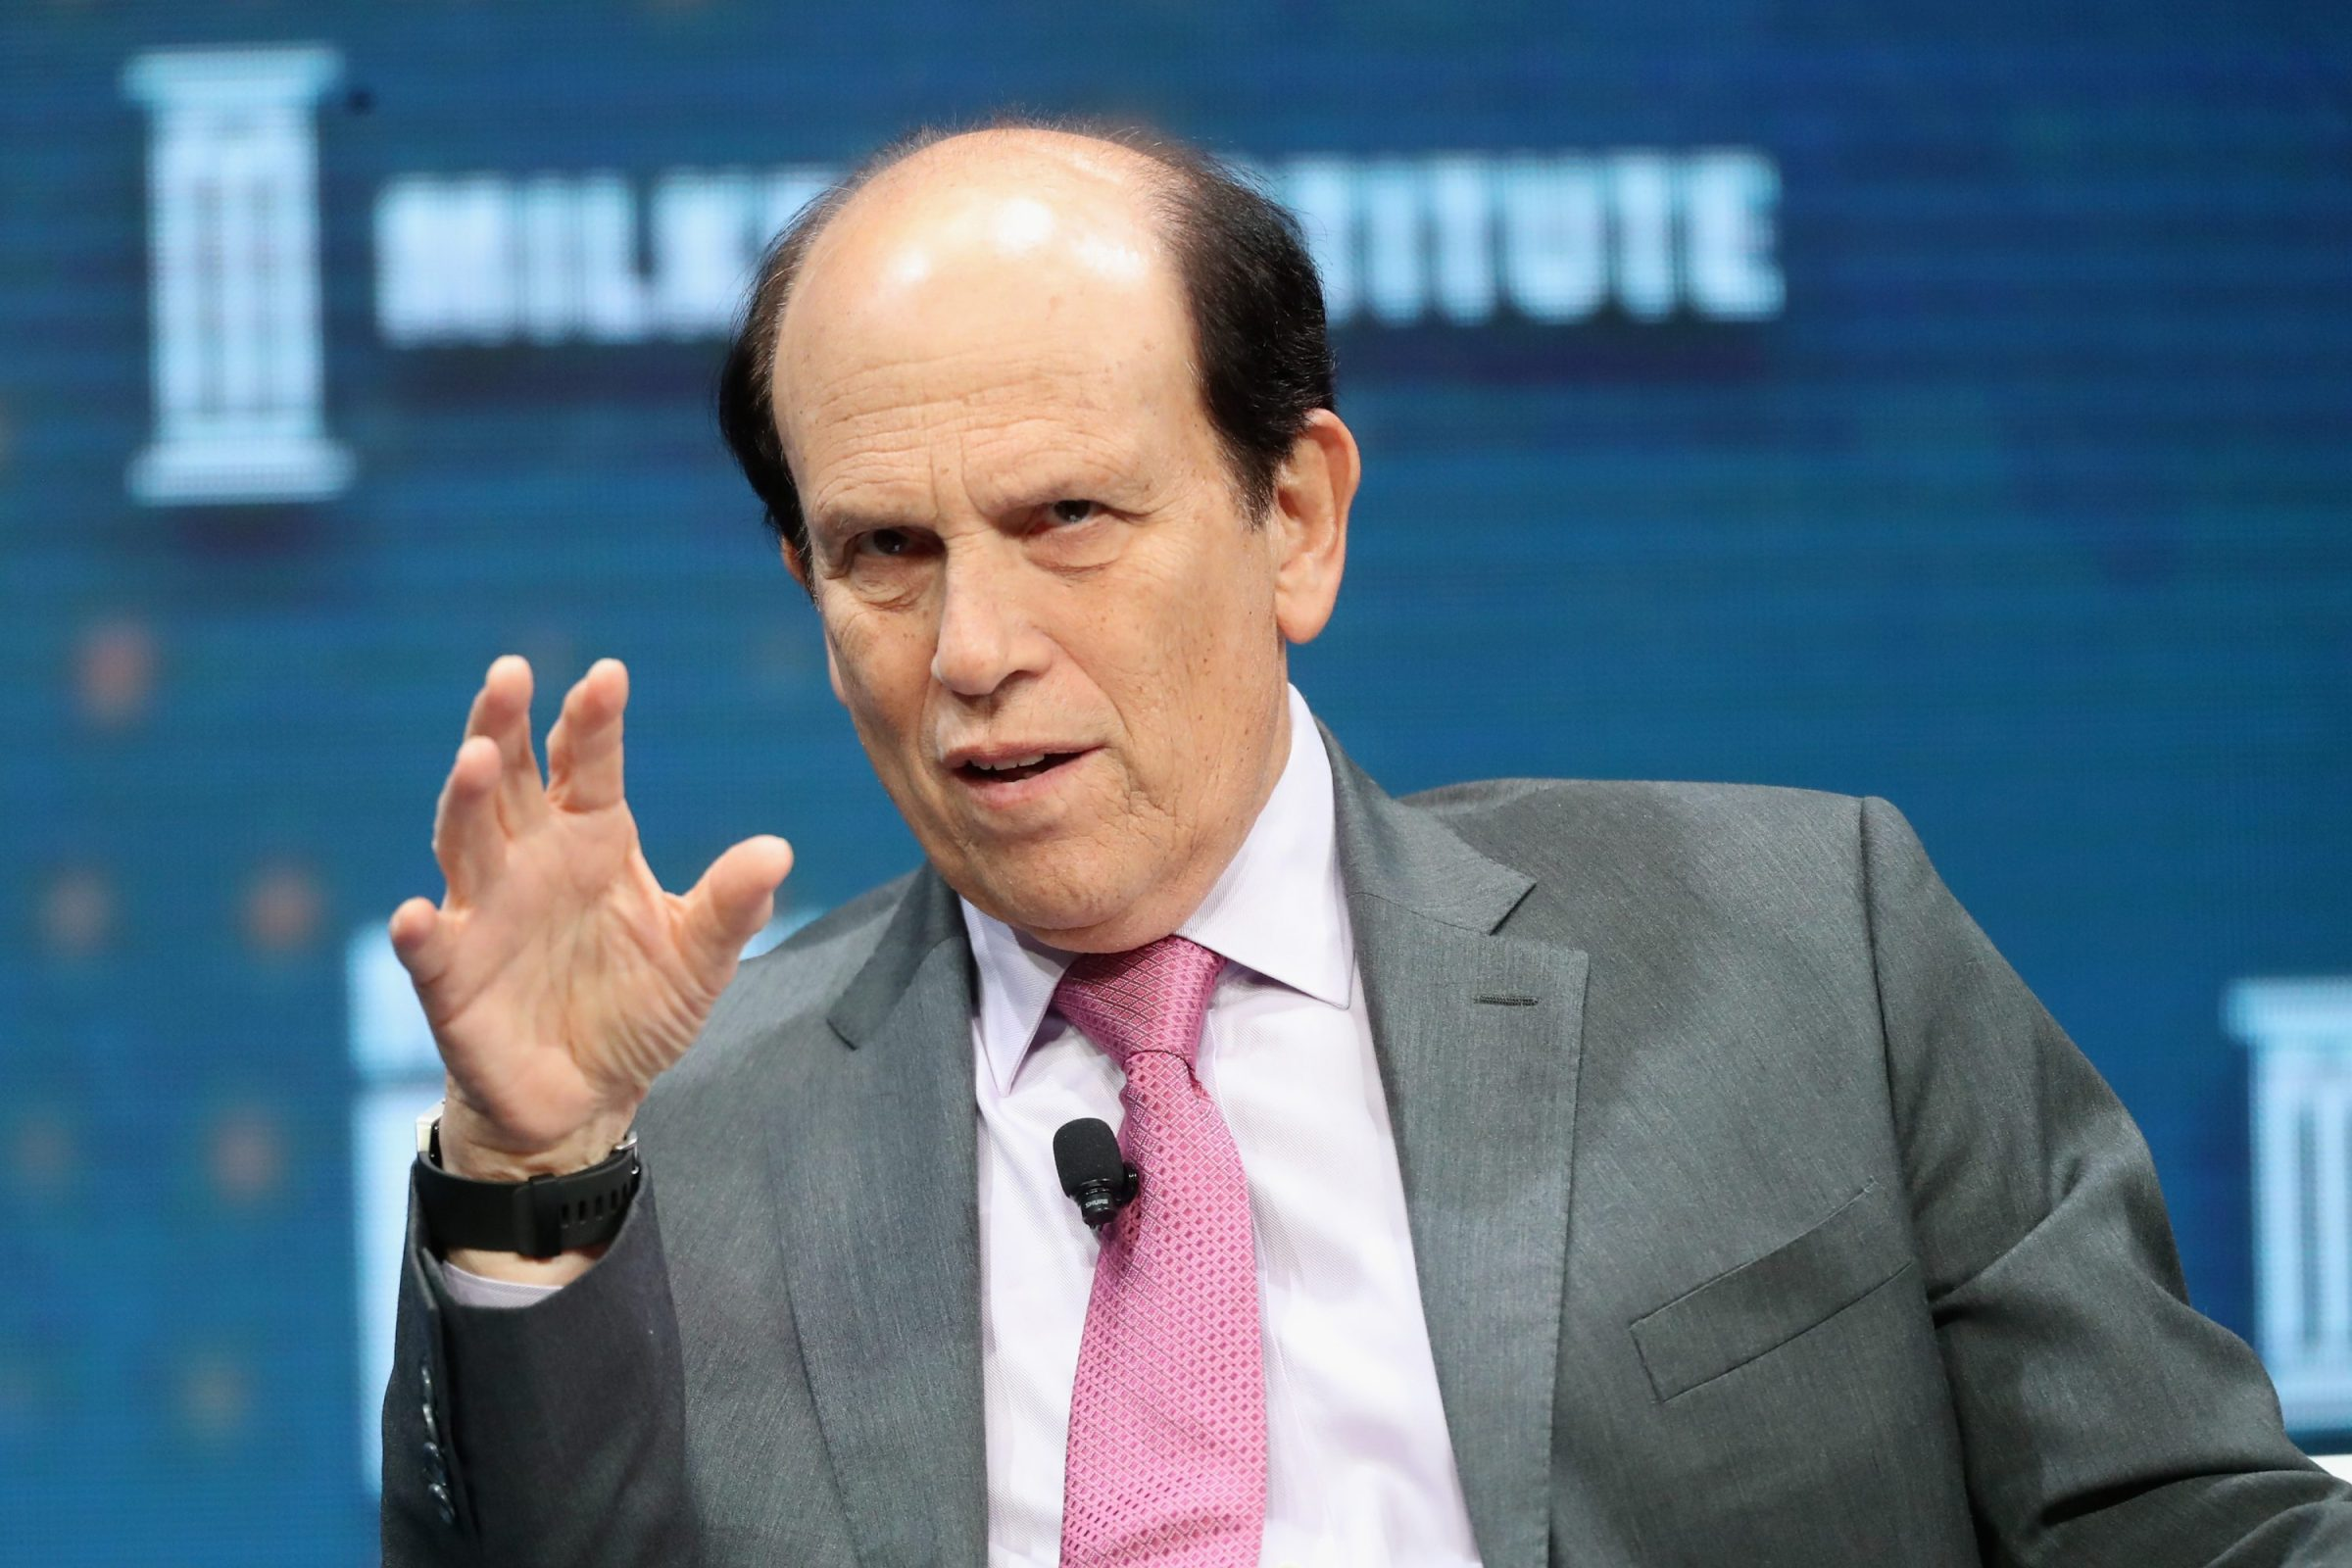 Investor Michael Milken at his own institute's annual event in 2017, back when he was still a convicted financial criminal.